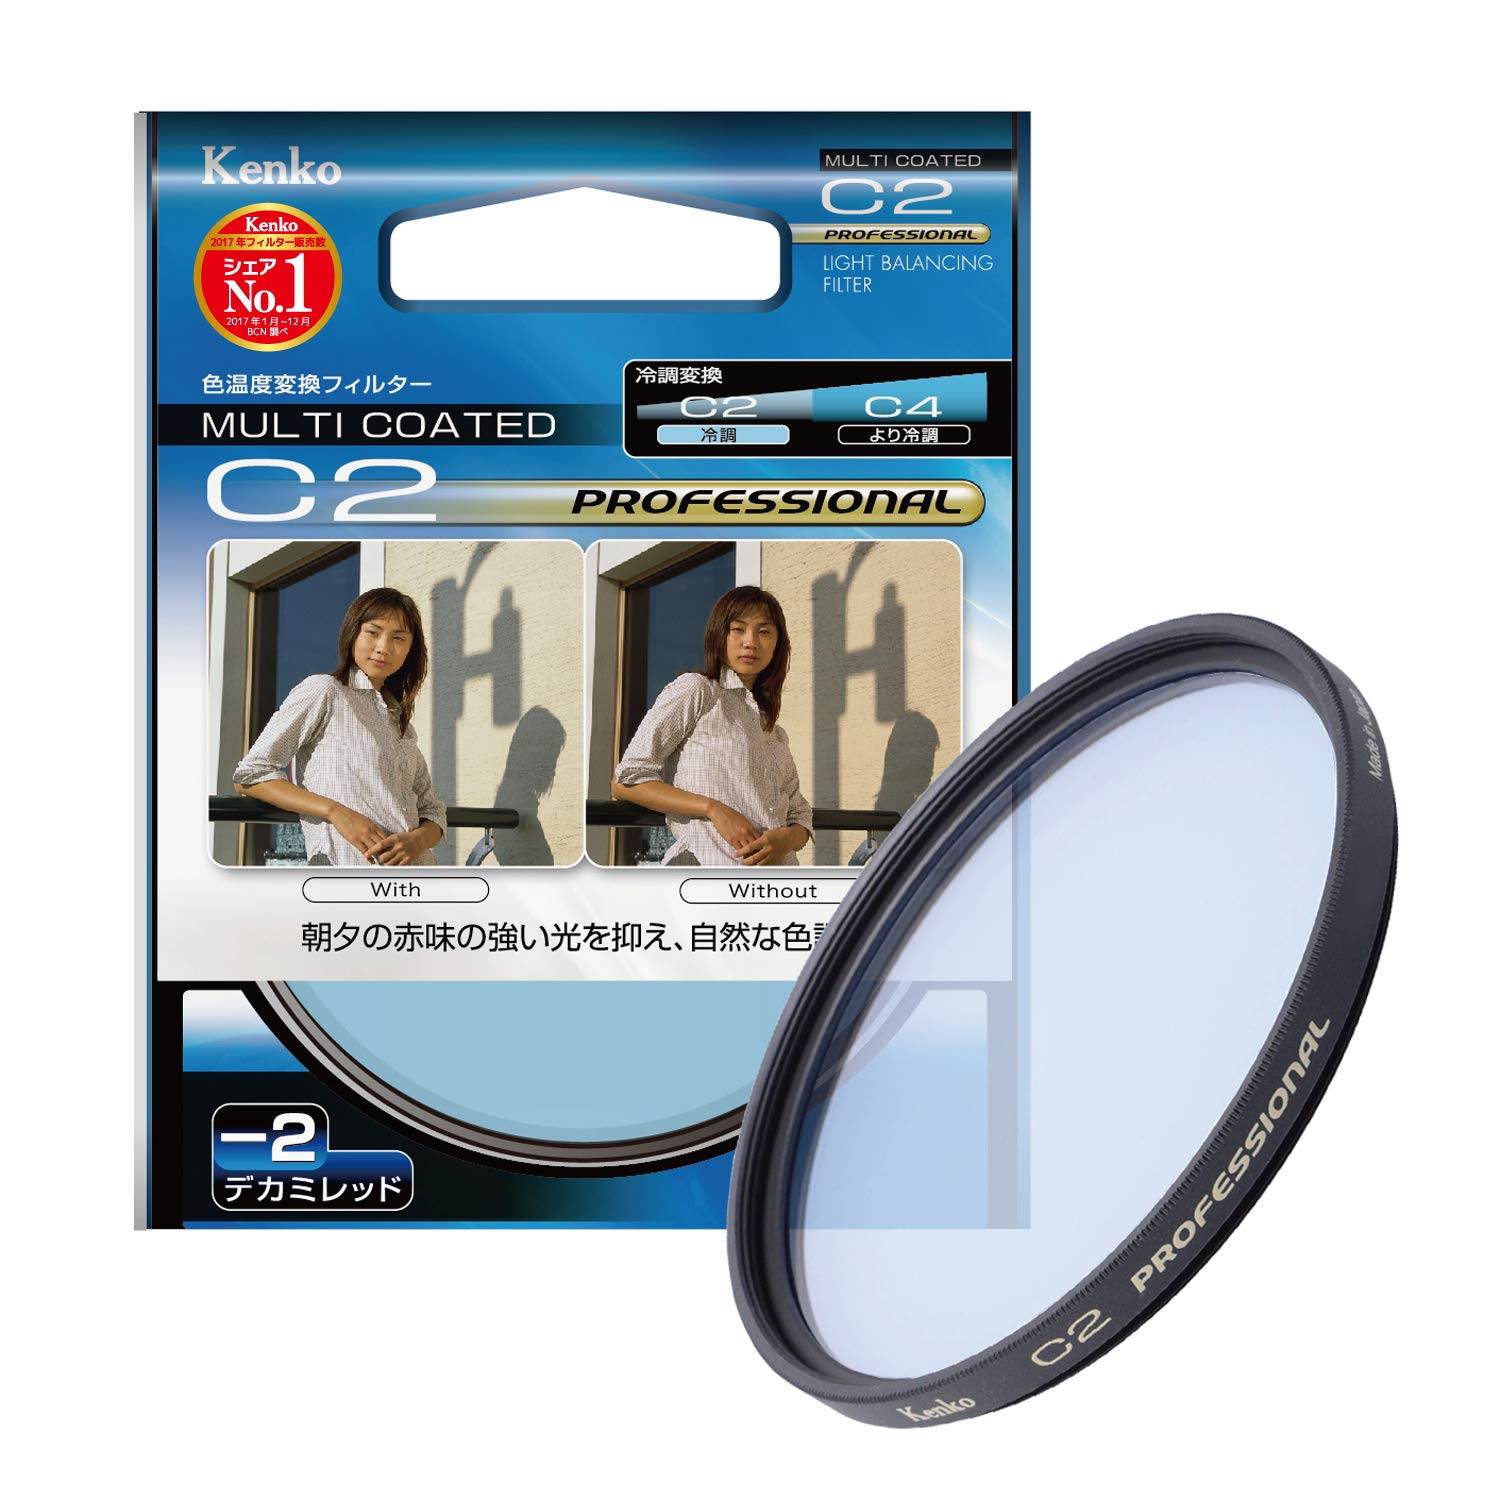 Kenko 82mm C2 Professional Multi-Coated Camera Lens Filters by Kenko